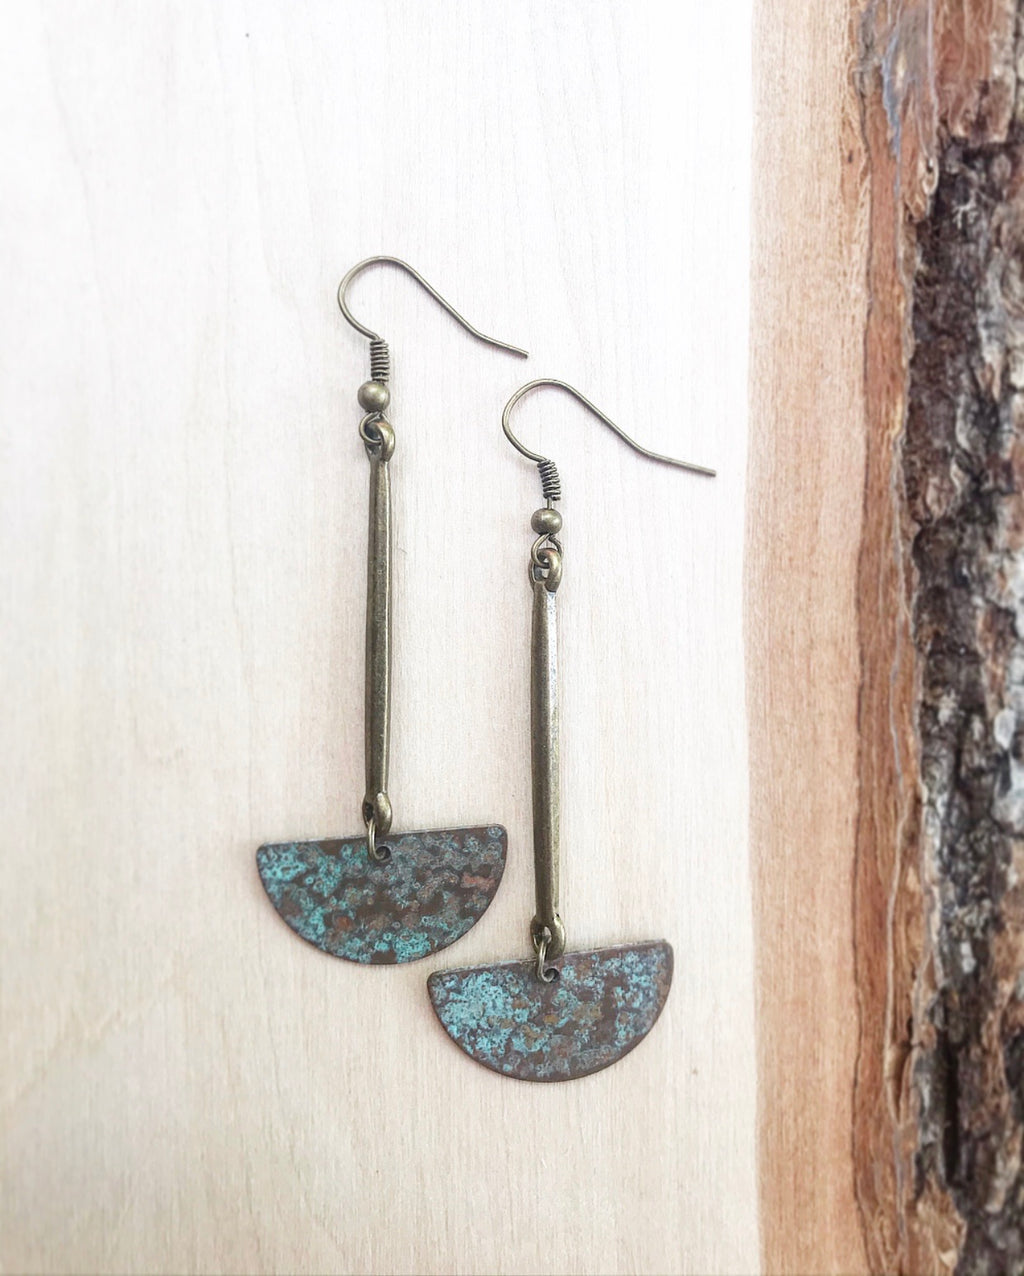 Urban Decay Pole Earrings